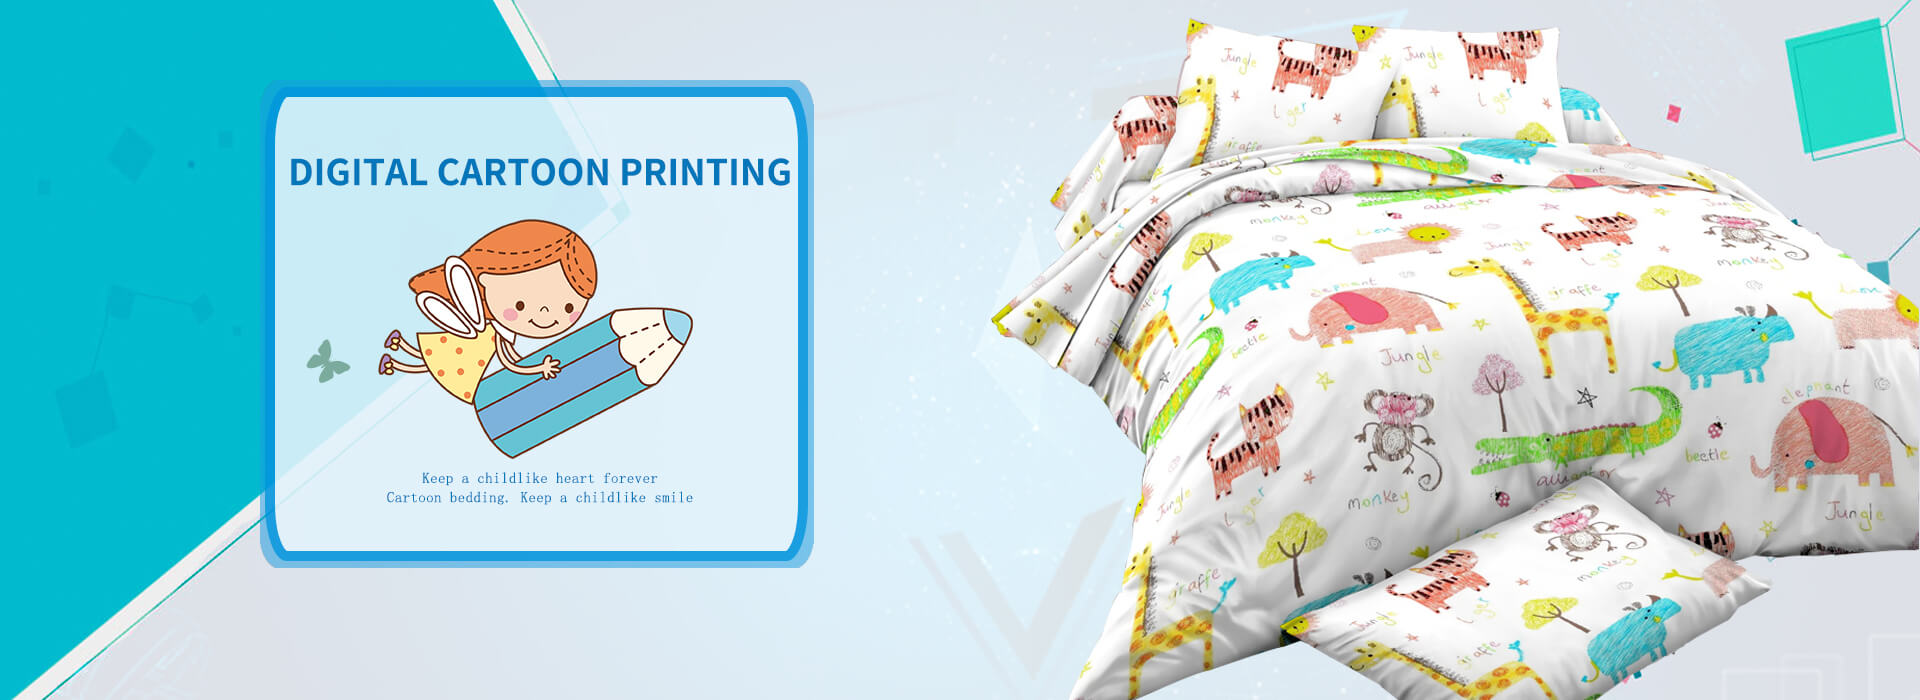 Digital cartoon printing